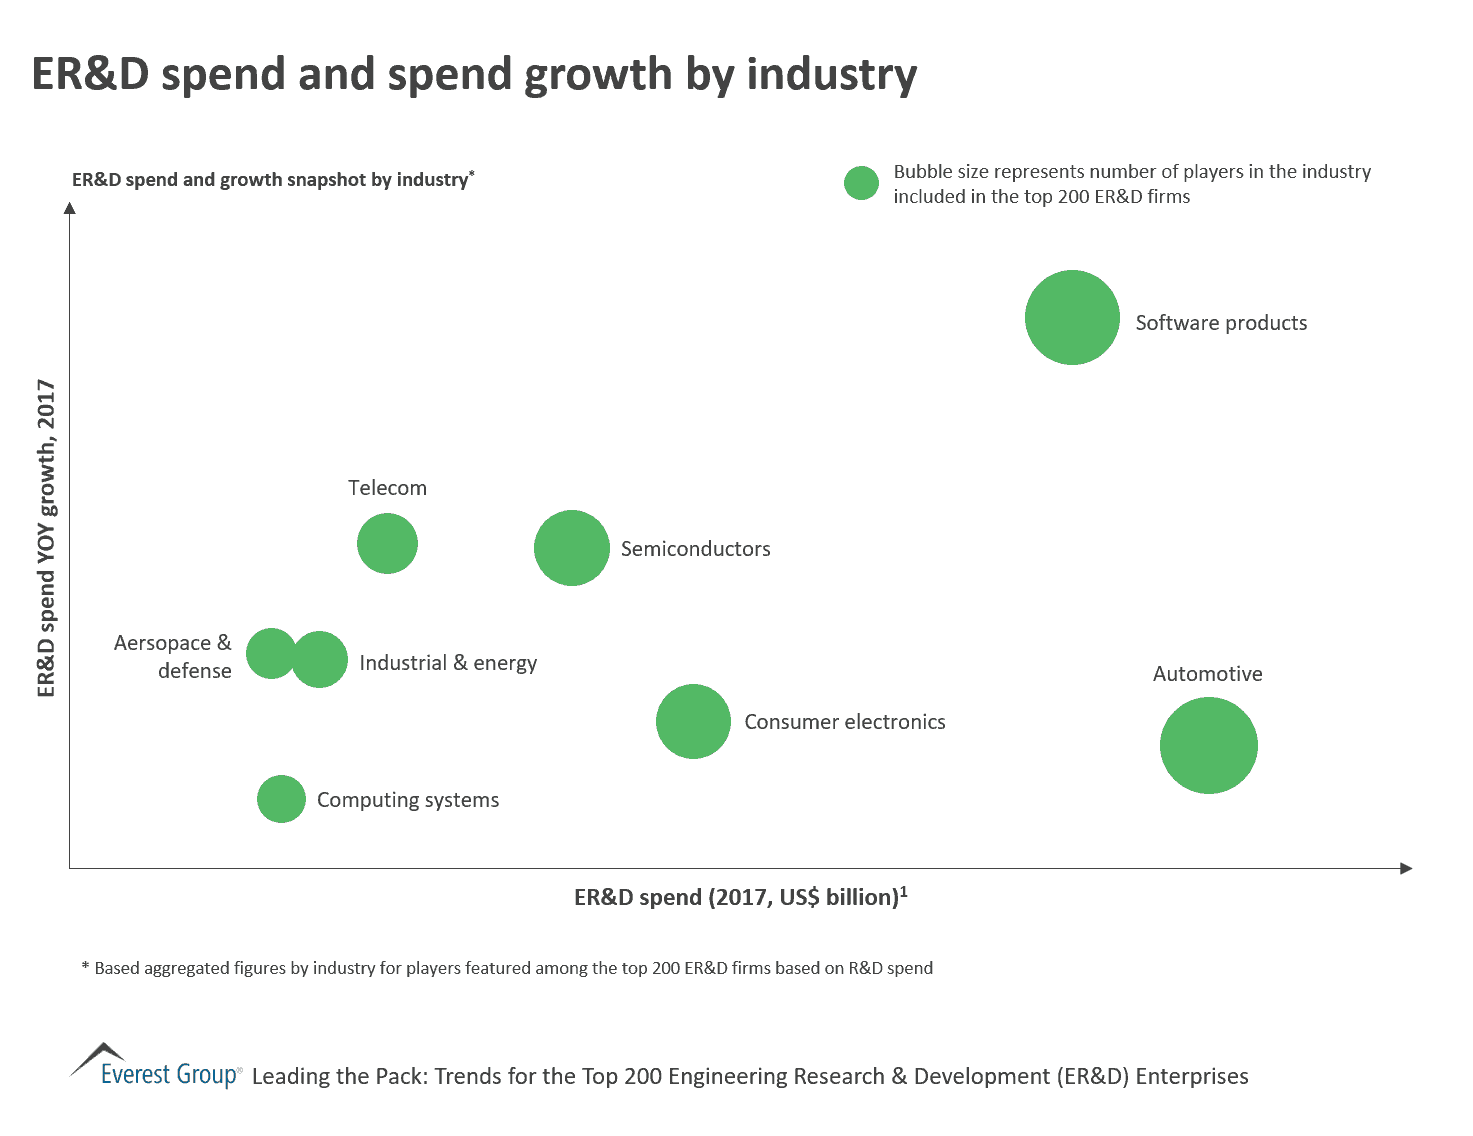 ER&D spend and spend growth by industry